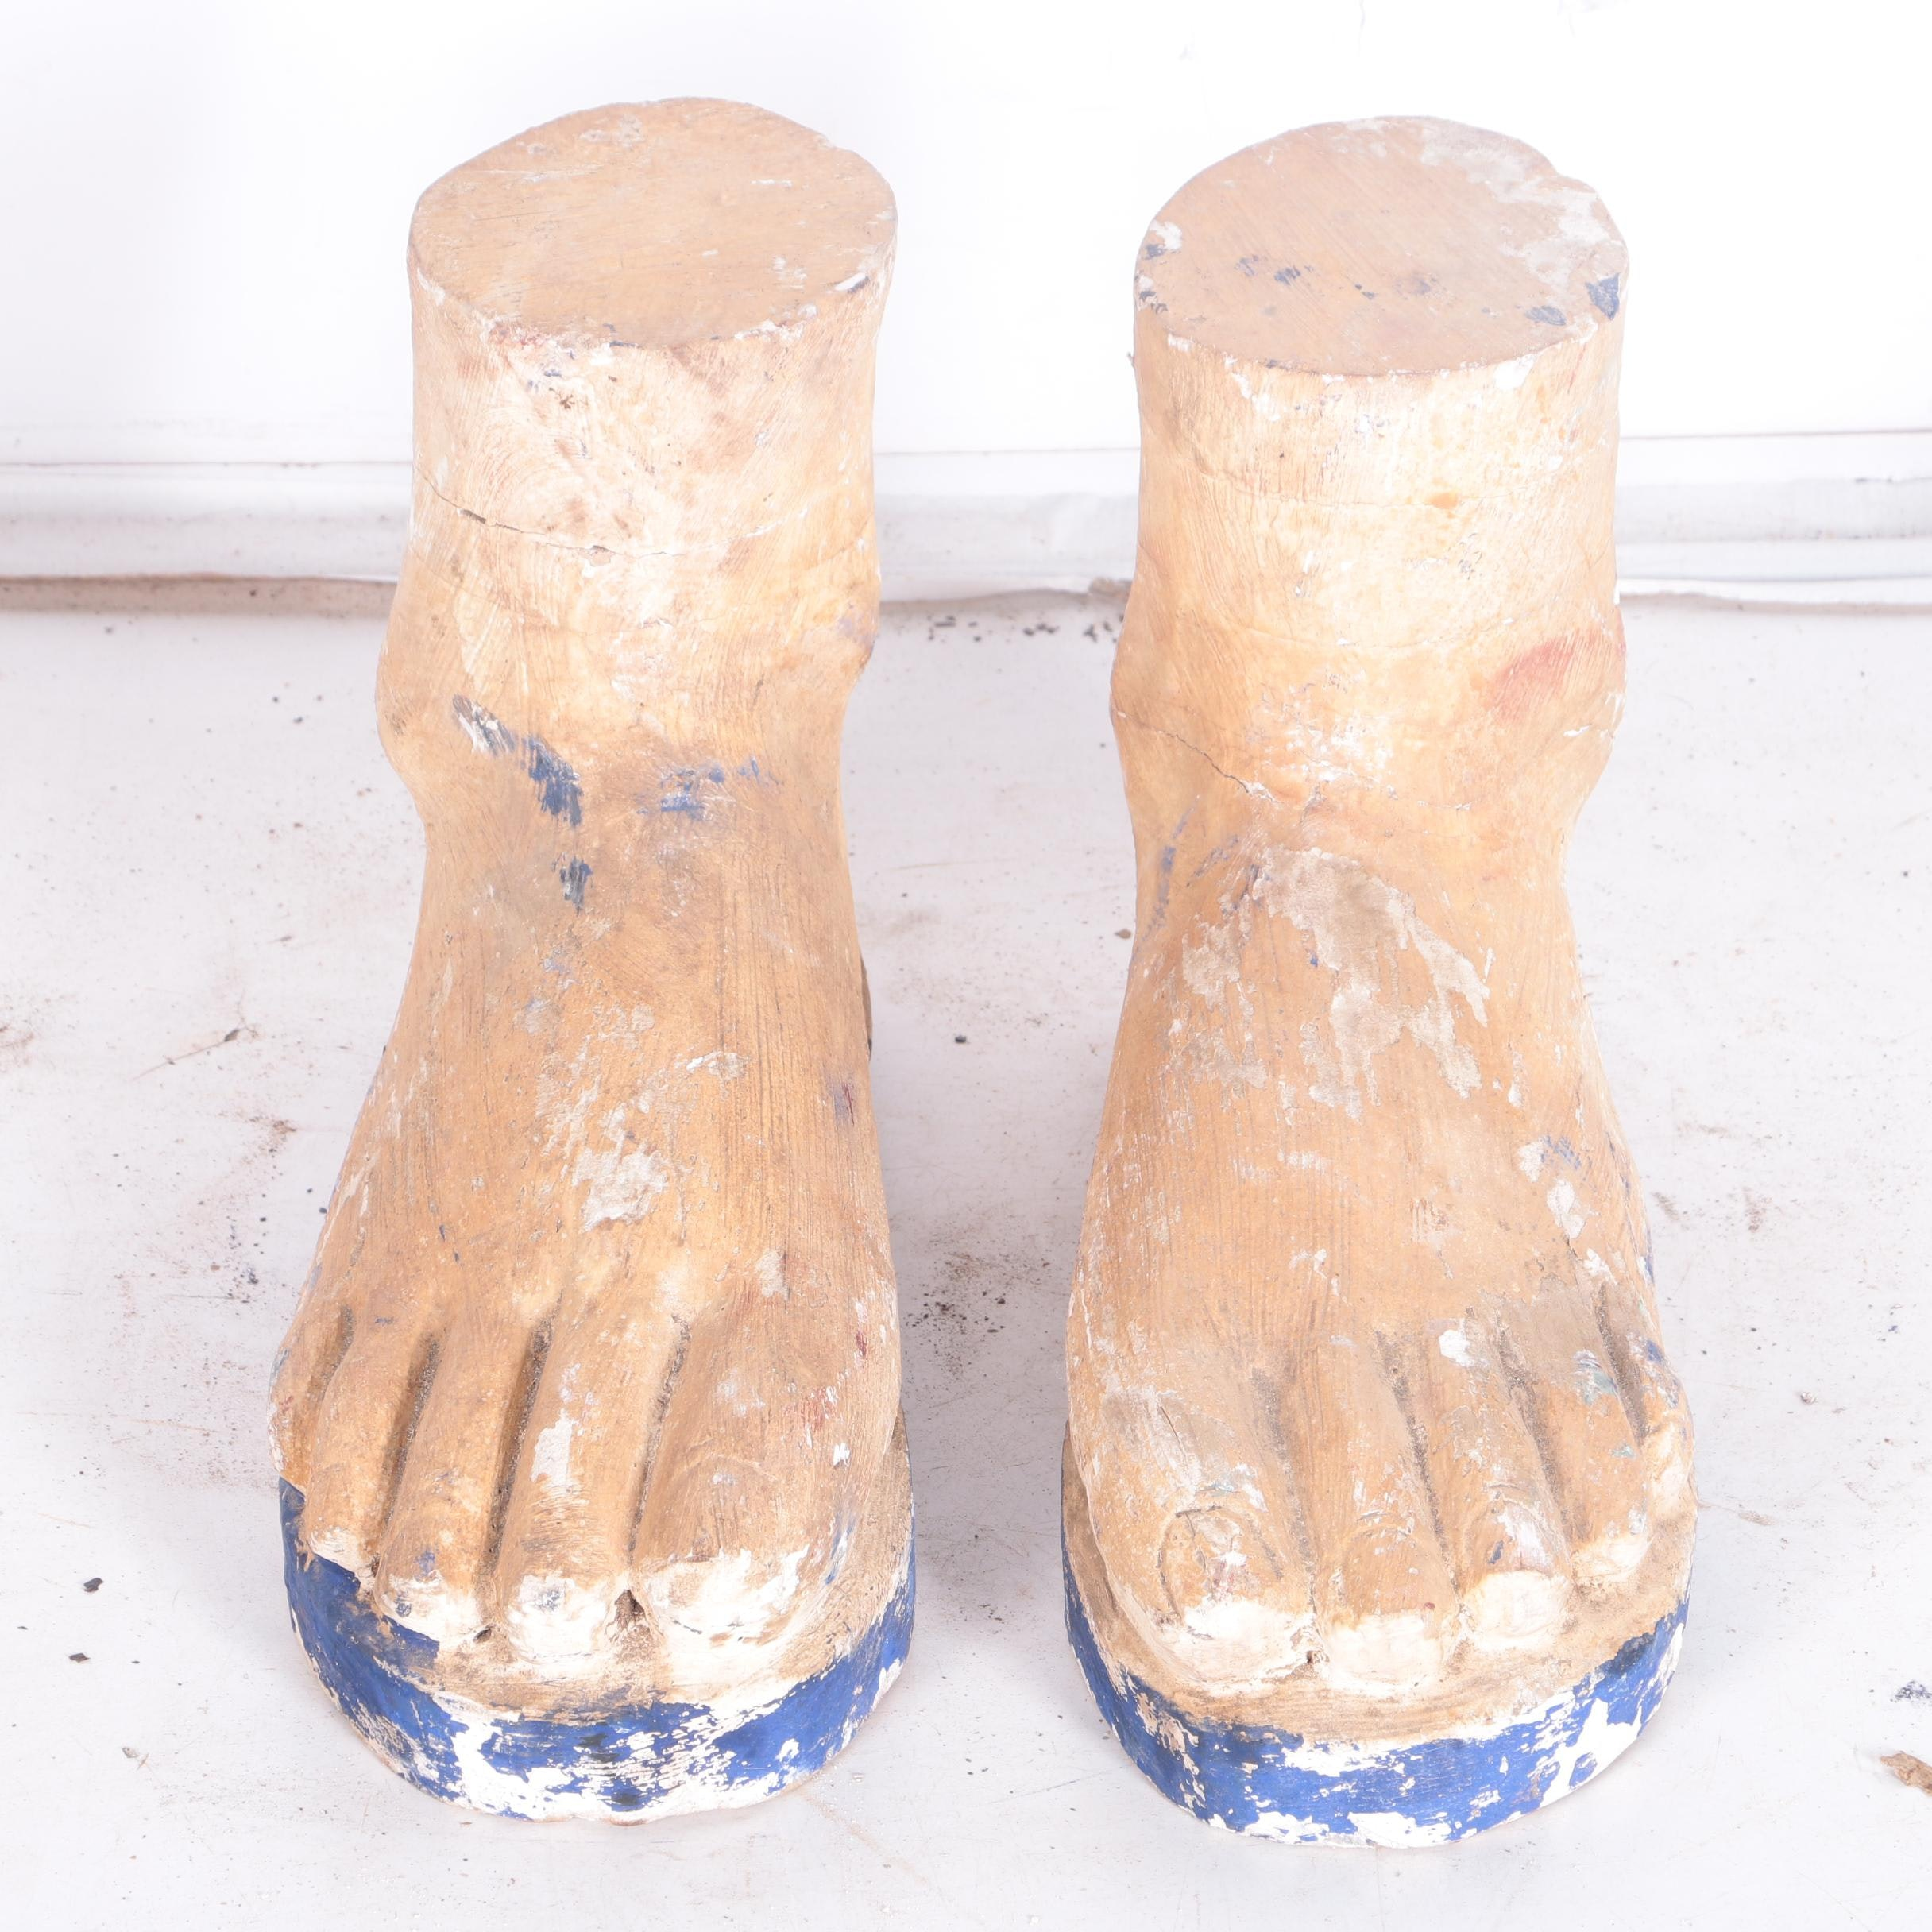 Carved Wood Sculptures of Feet